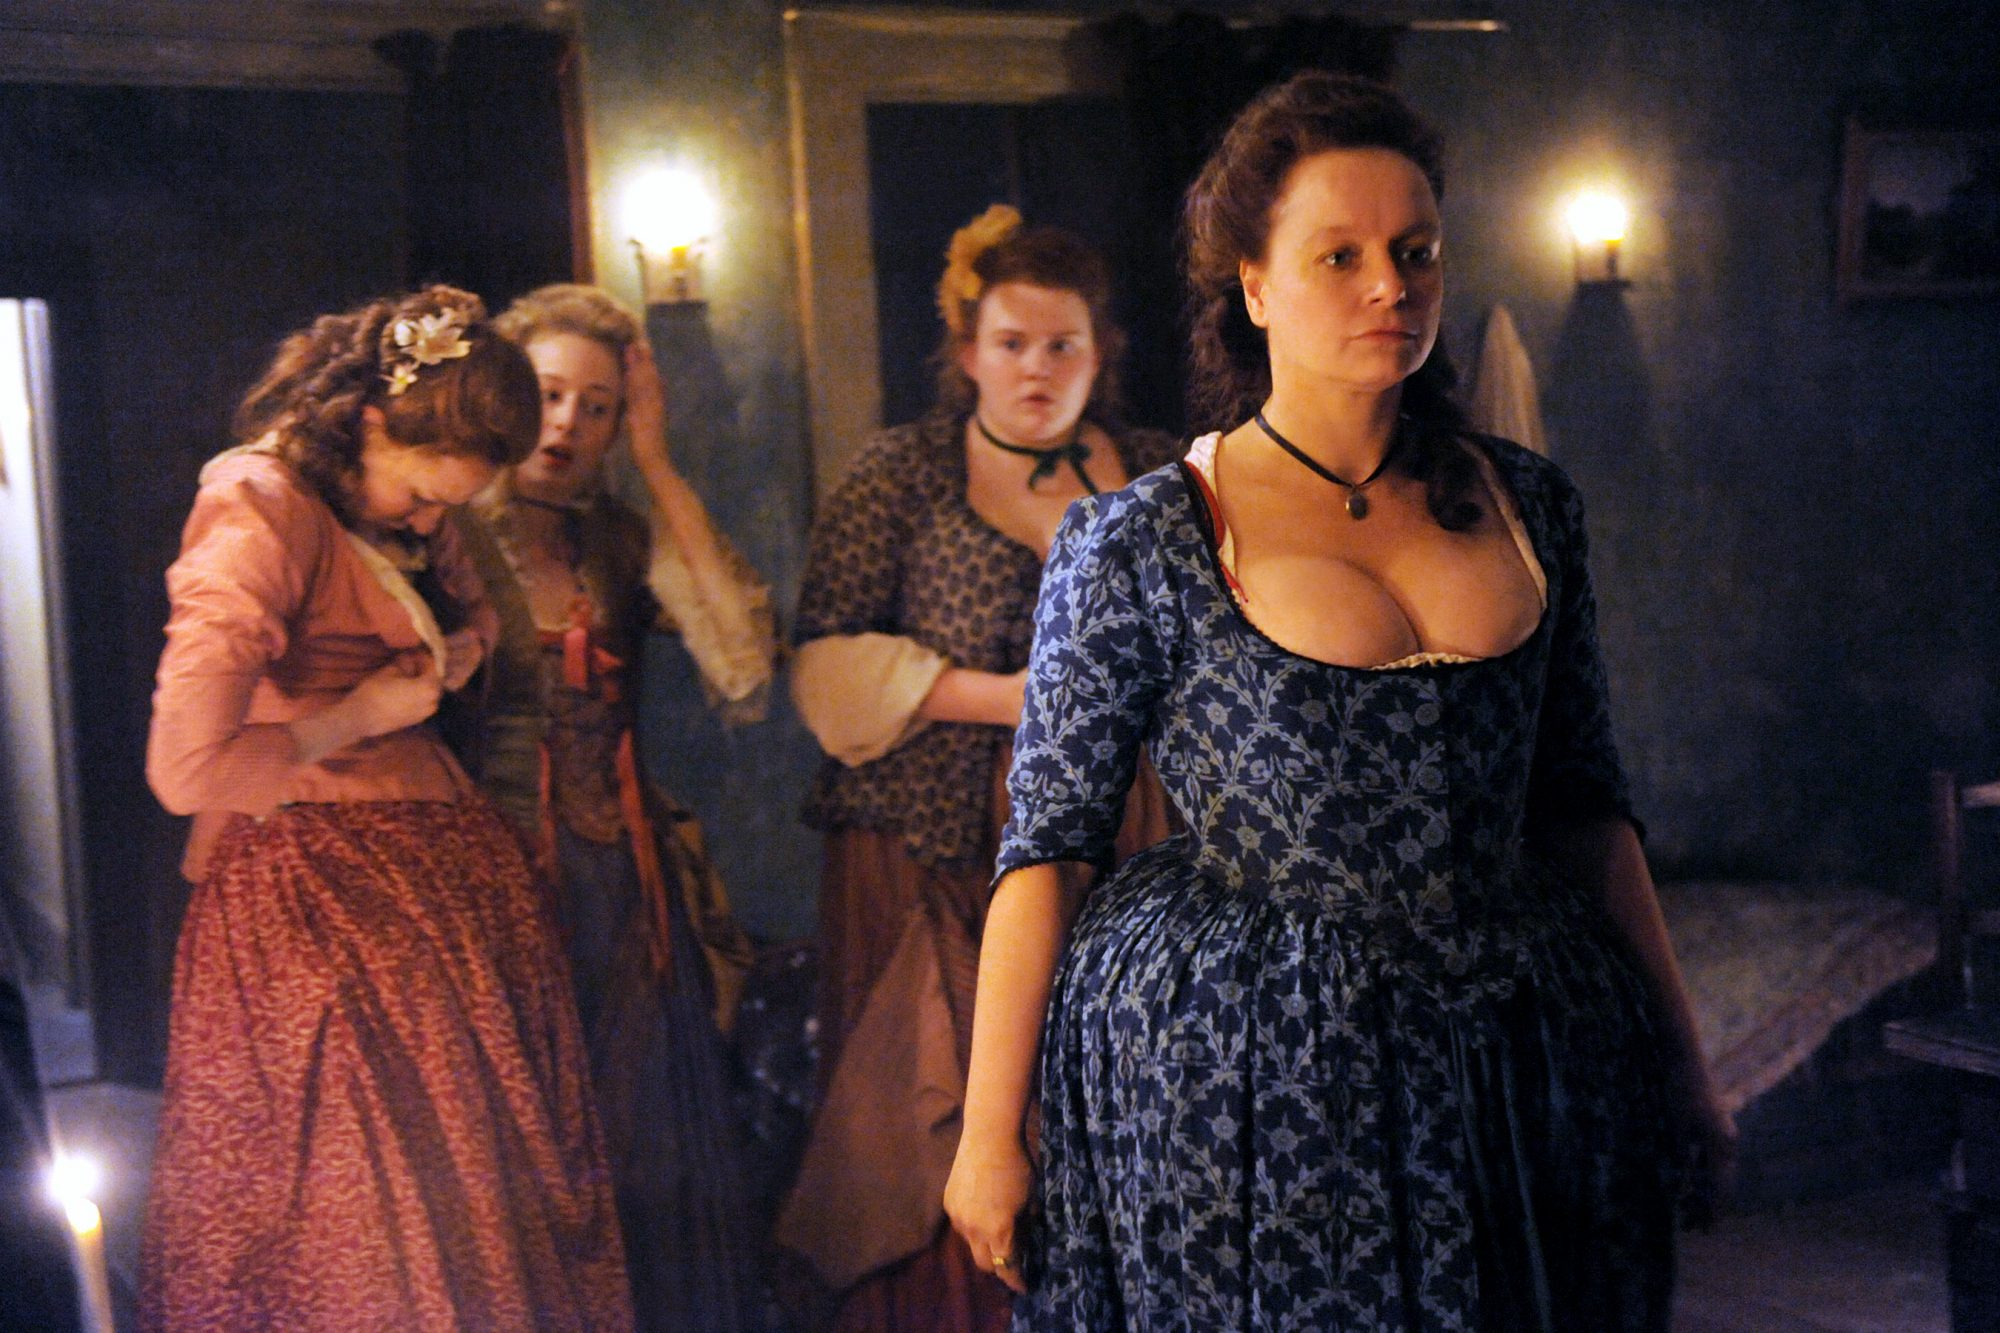 Harlots Episode 1 - Samantha Morton